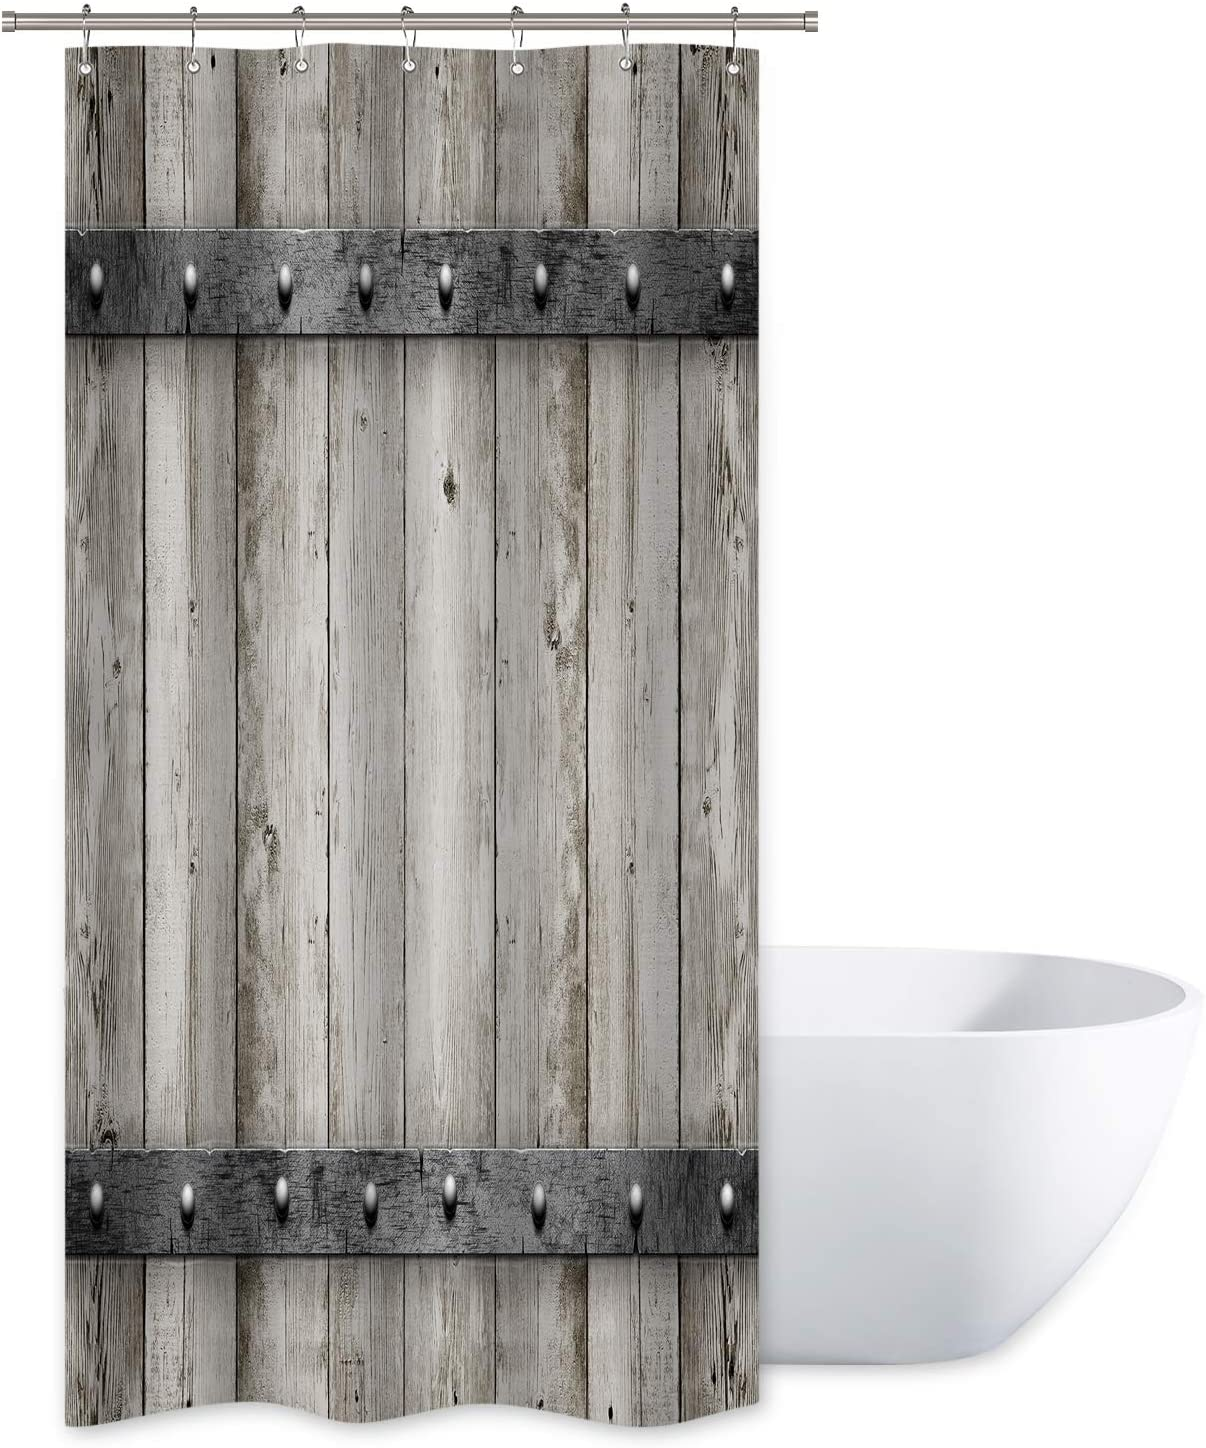 """Riyidecor Rustic Barn Door Shower Curtain 36"""" W x 72"""" H Small Stall Wooden Metal Texture Bathroom Decor Fabric Panel Polyester Waterproof with 12 Pack Plastic Shower Hooks"""